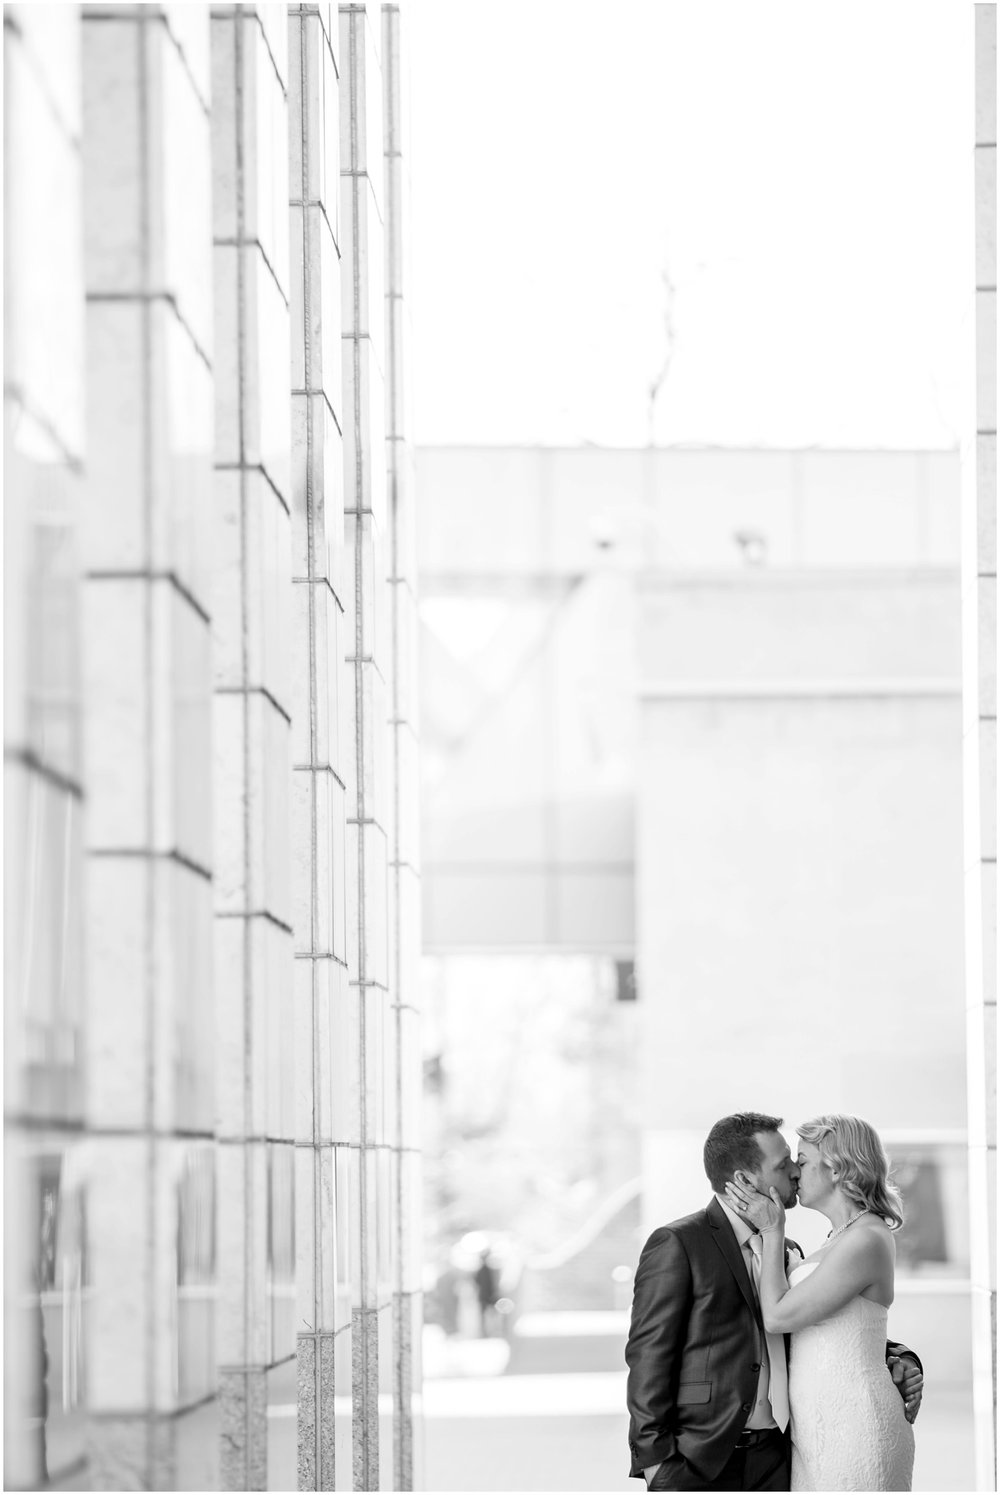 174-Downtown-Denver-wedding-photography-bw.jpg